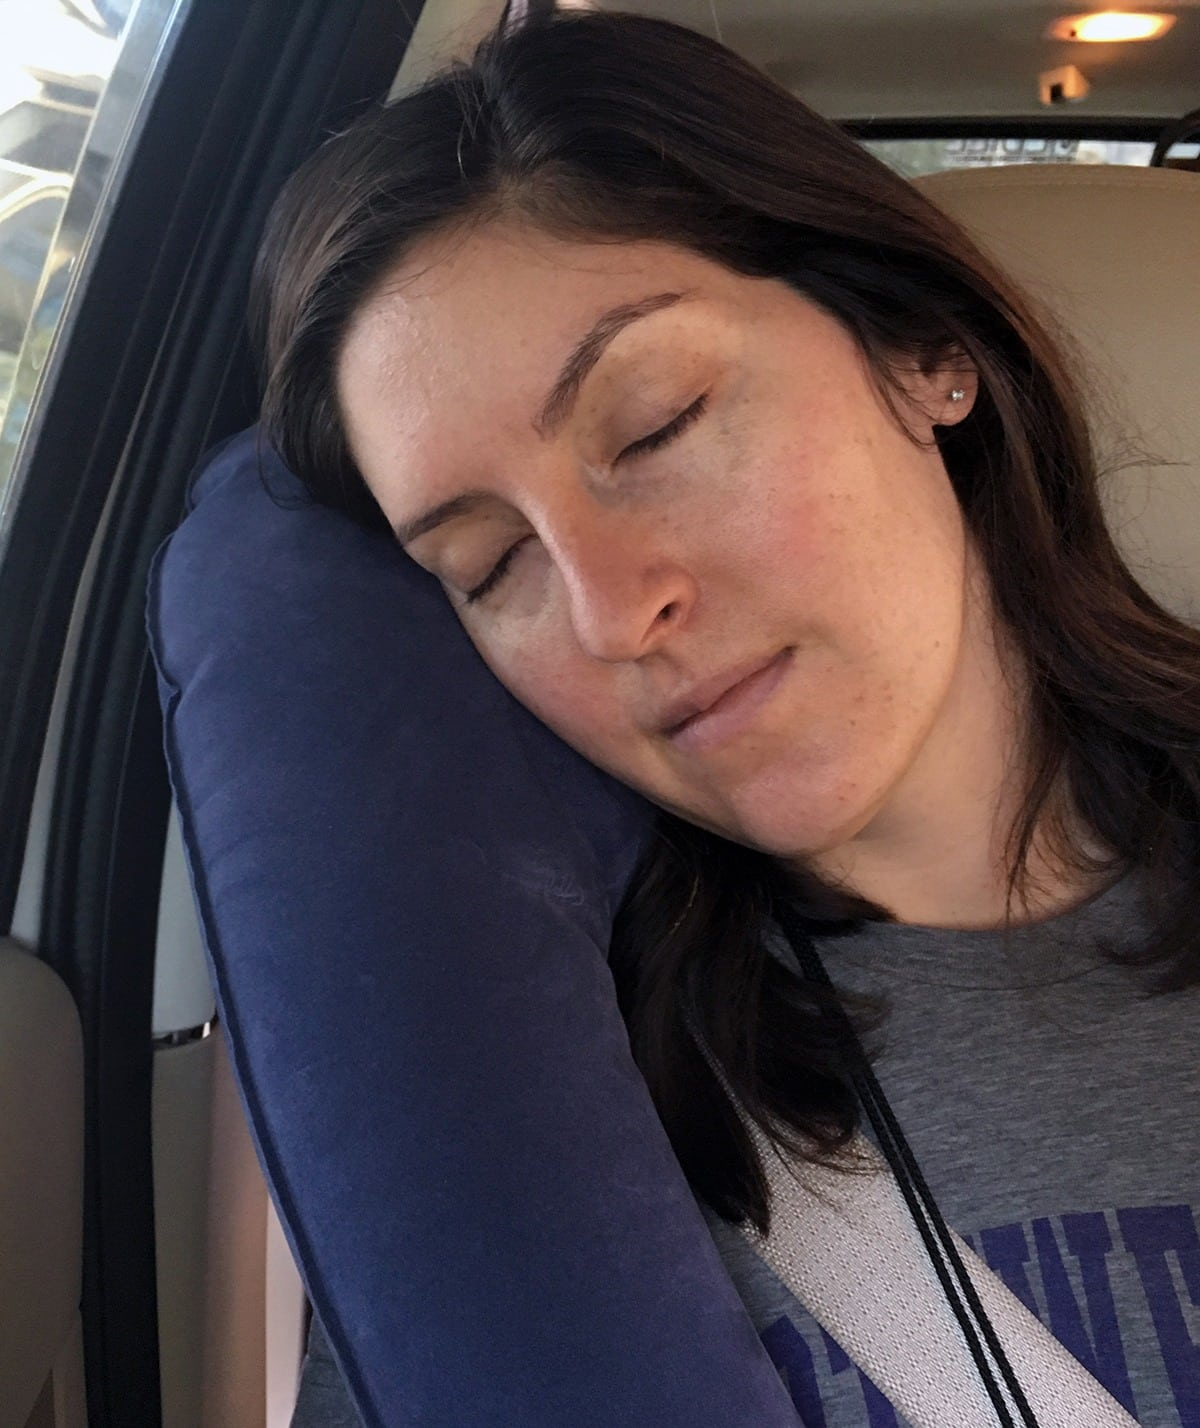 Travelrest Ultimate Inflatable Travel Pillow Review